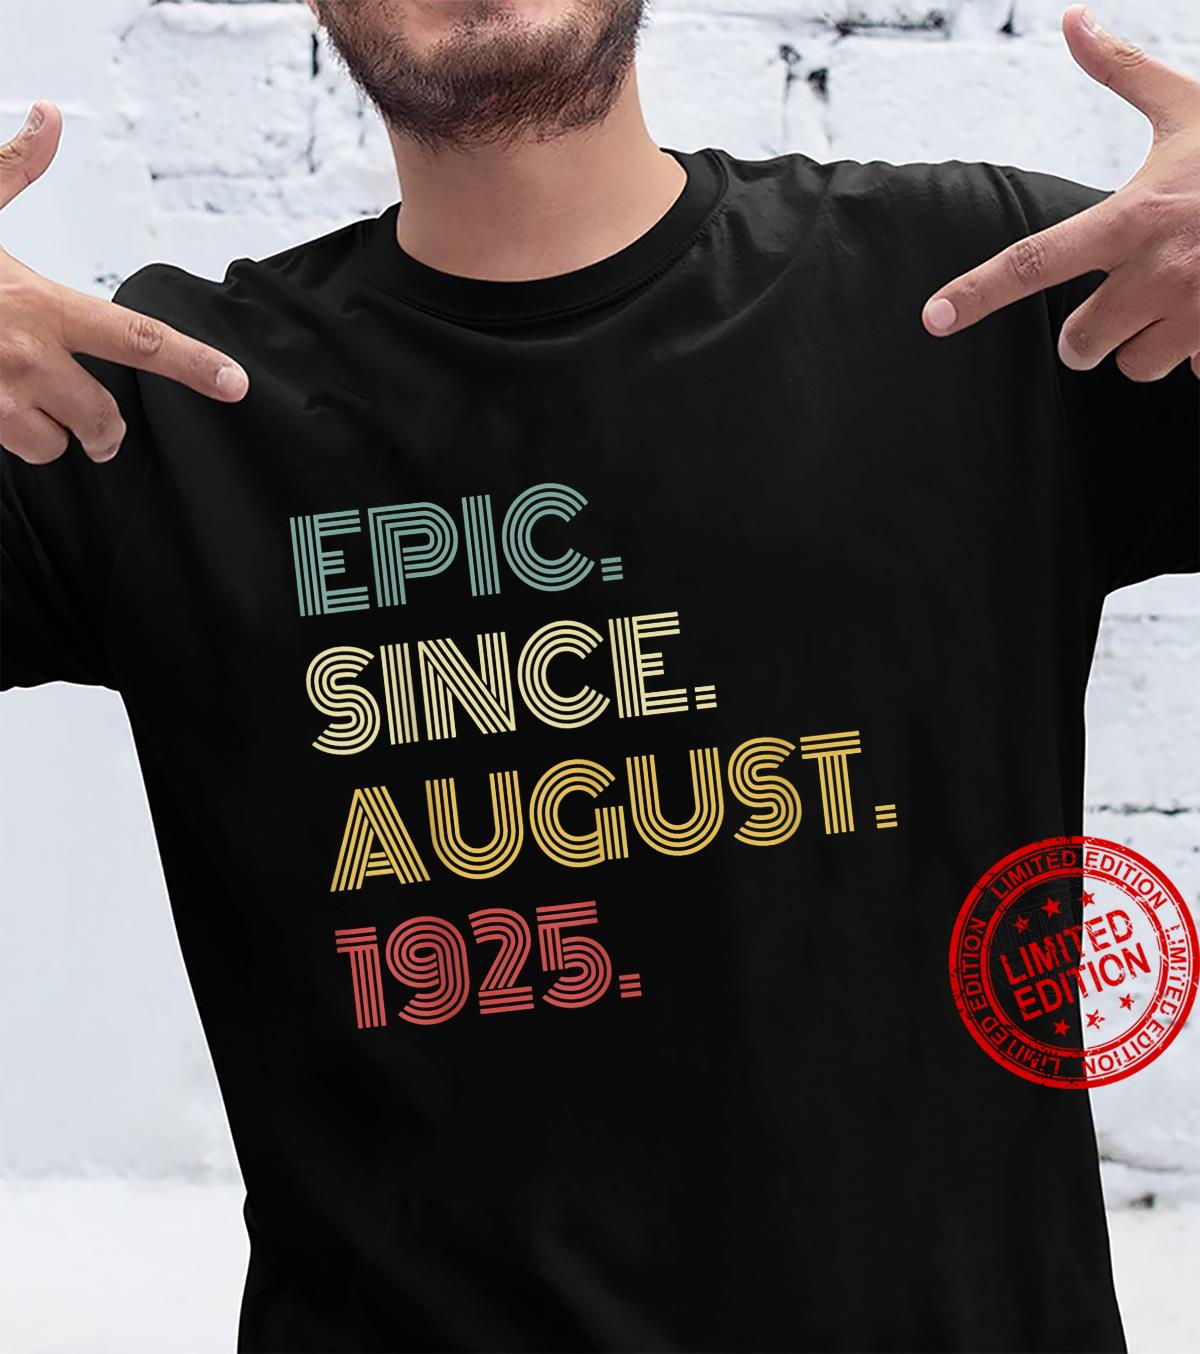 Funny 96 Year Old Shirt Boys Girls Epic Since August 1925 Shirt